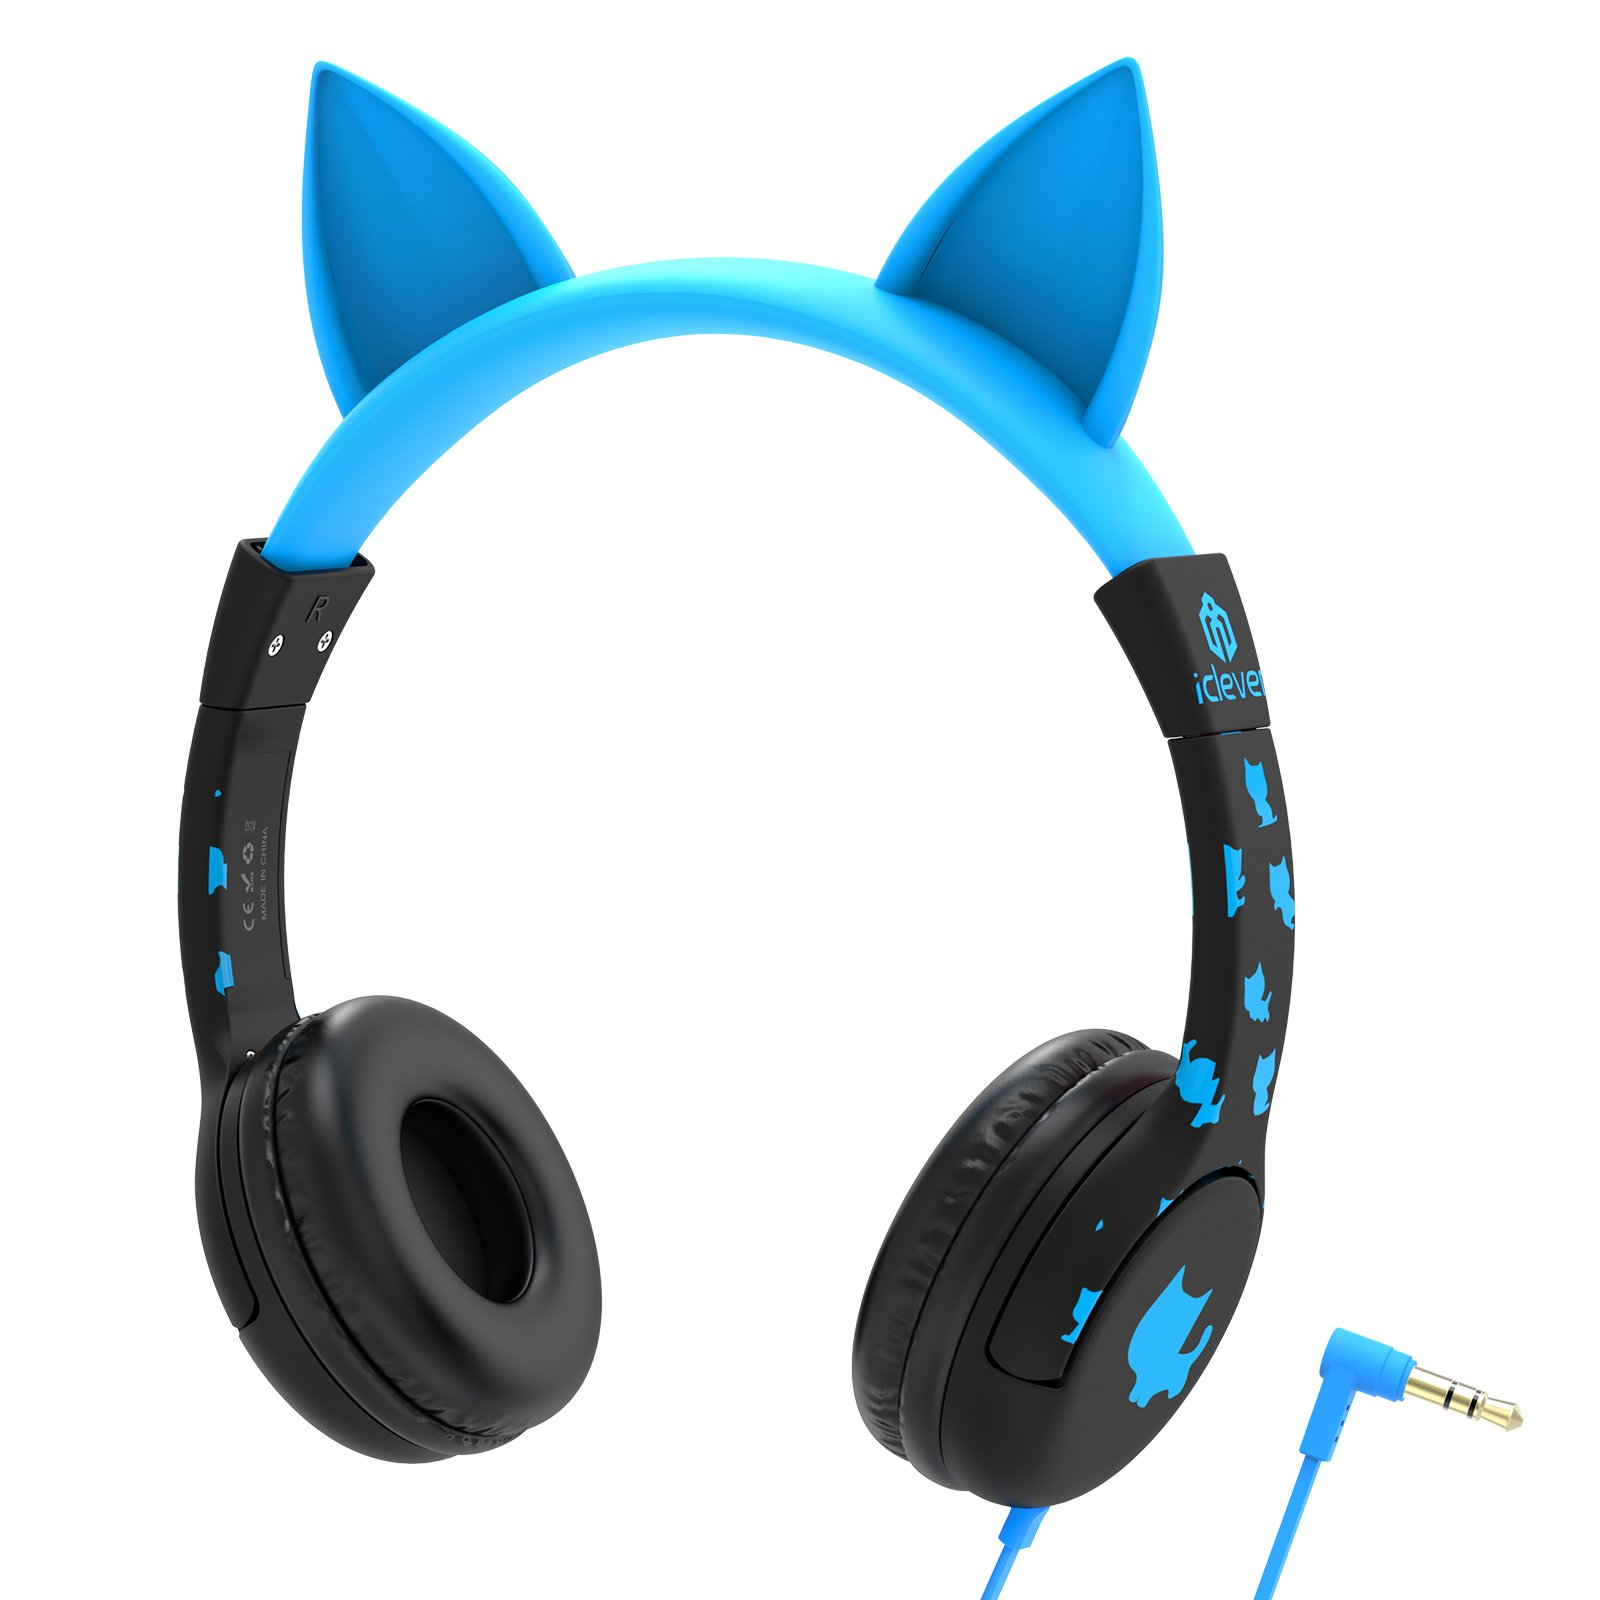 iClever Kids Headphones, Cat-inspired Wired On-Ear Headsets with 85dB Volume Limited, Food Grade Silicone Material (Kids-friendly), 3.5mm Audio Jack Cable, Children Headphones for Kids, Blue by iClever